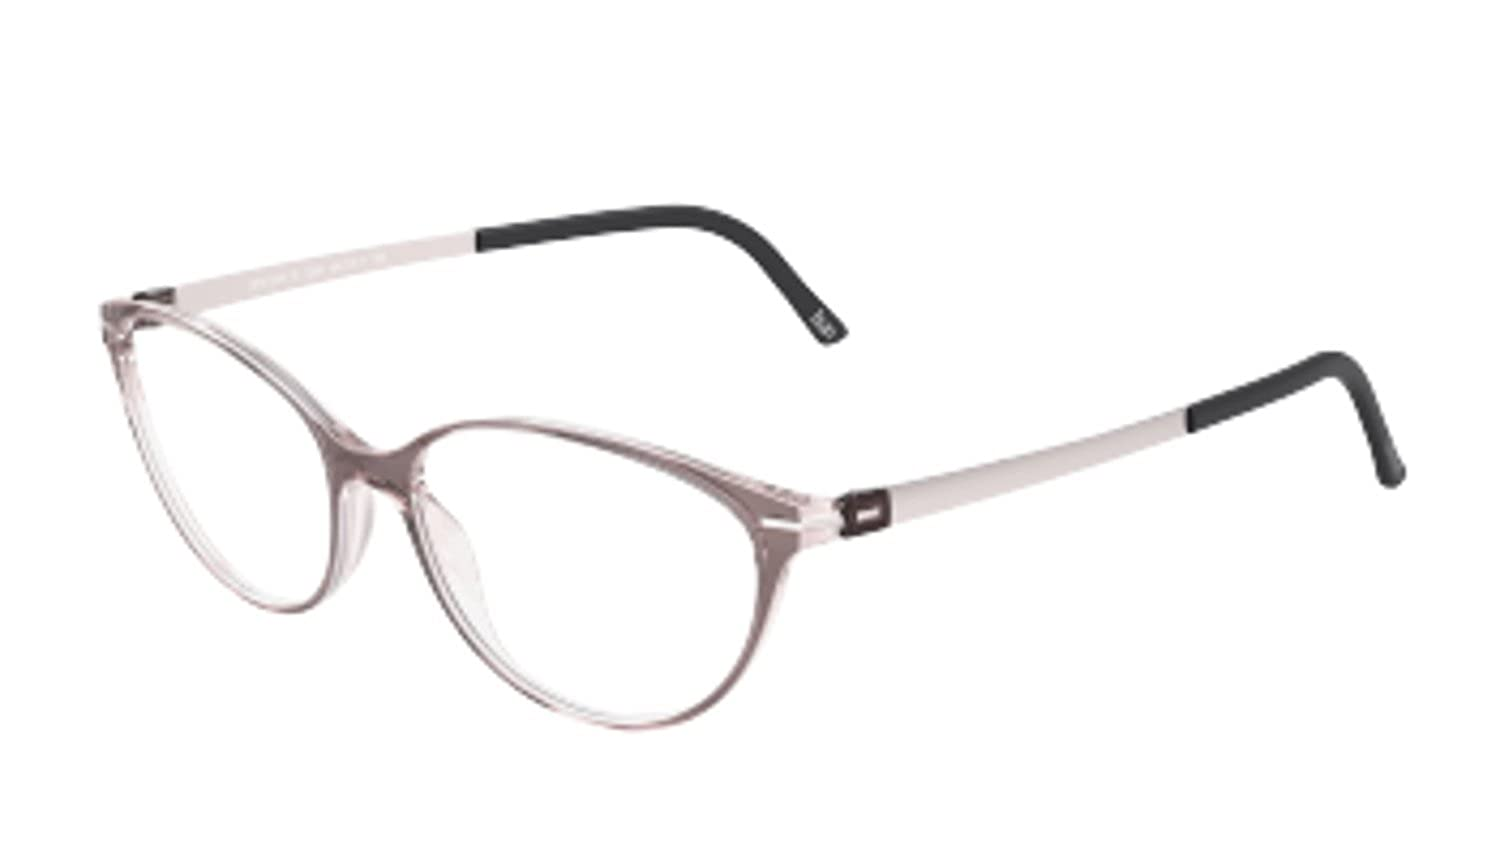 Eyeglasses Silhouette Titan Accent Full Rim 1578 1578 3500 54//15//130 3 piece frame chassis